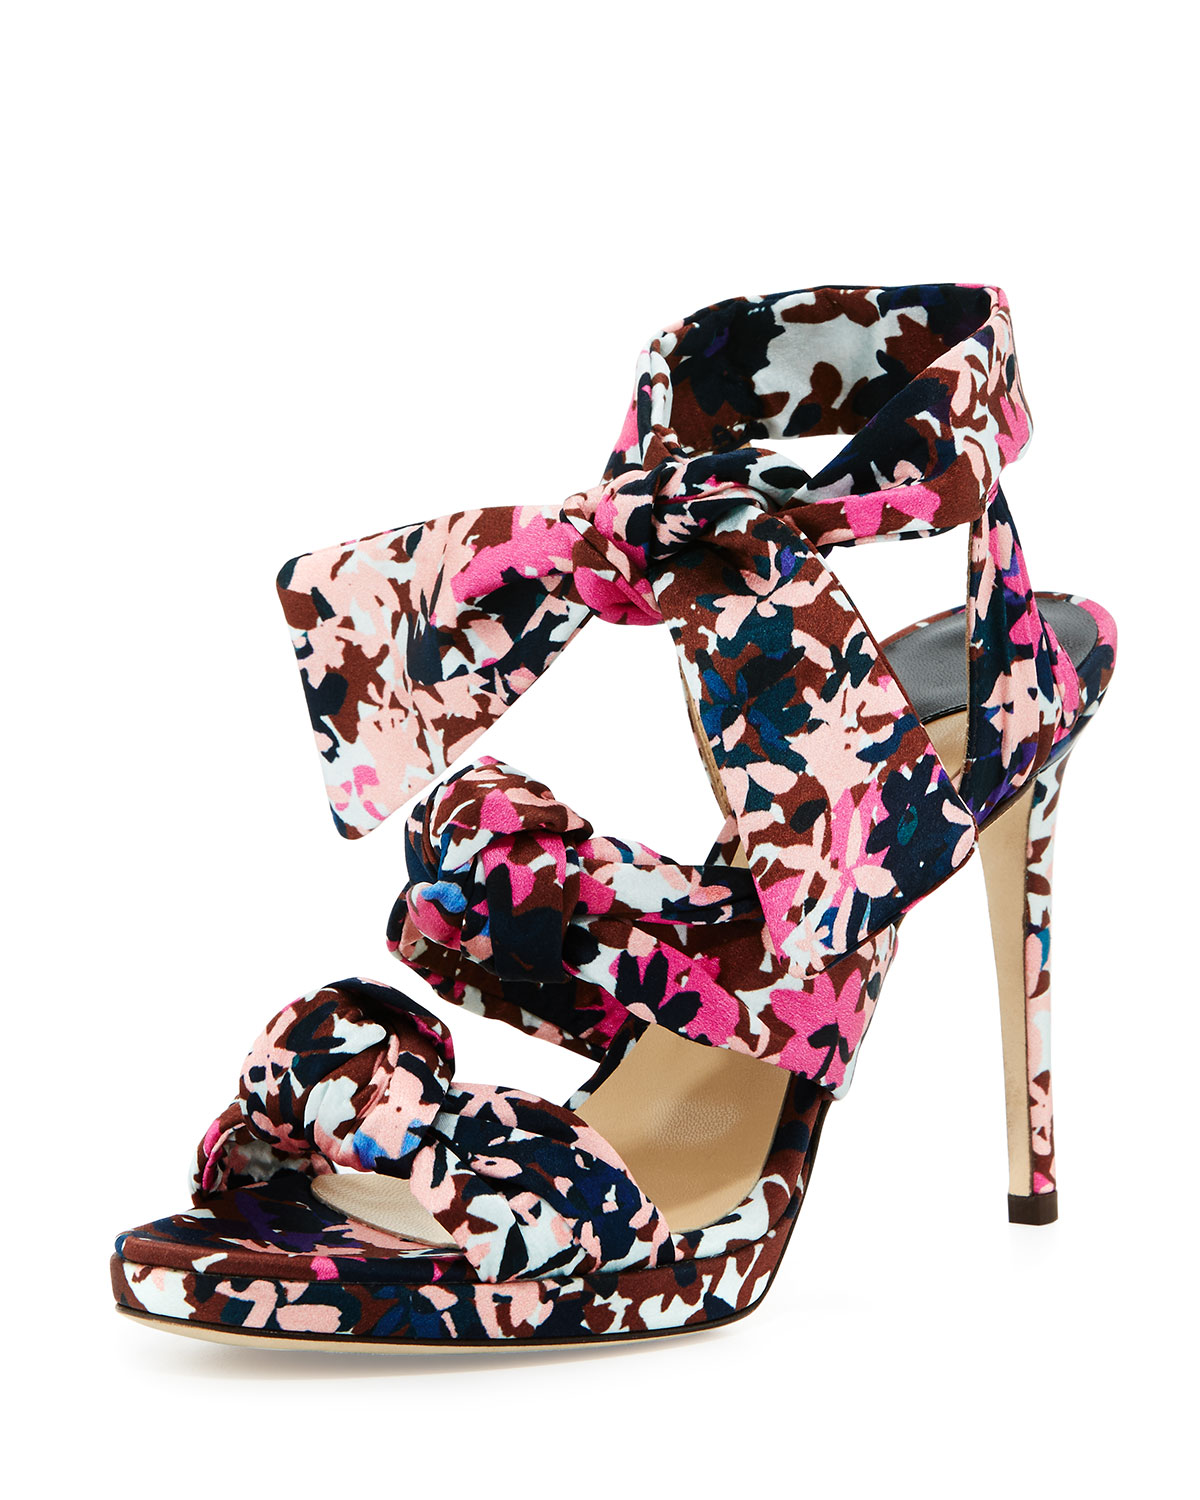 9bc084a4bb7 Jimmy Choo Kris Printed Knotted 100mm Sandals, Dahlia/Brown   Neiman ...